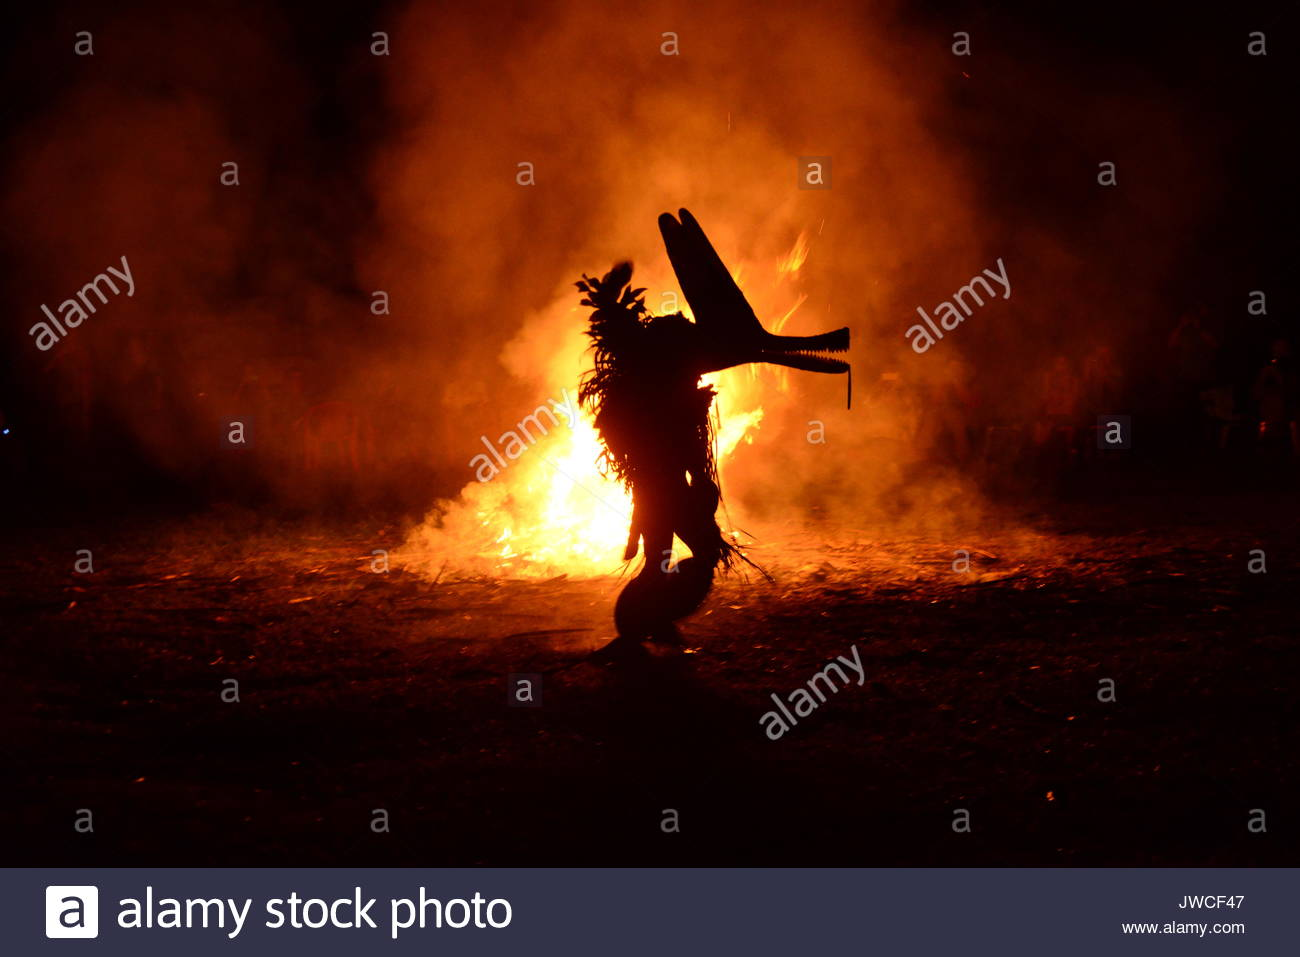 A costumed person in silhouette in front of a fire during a Baining fire dance. Stock Photo